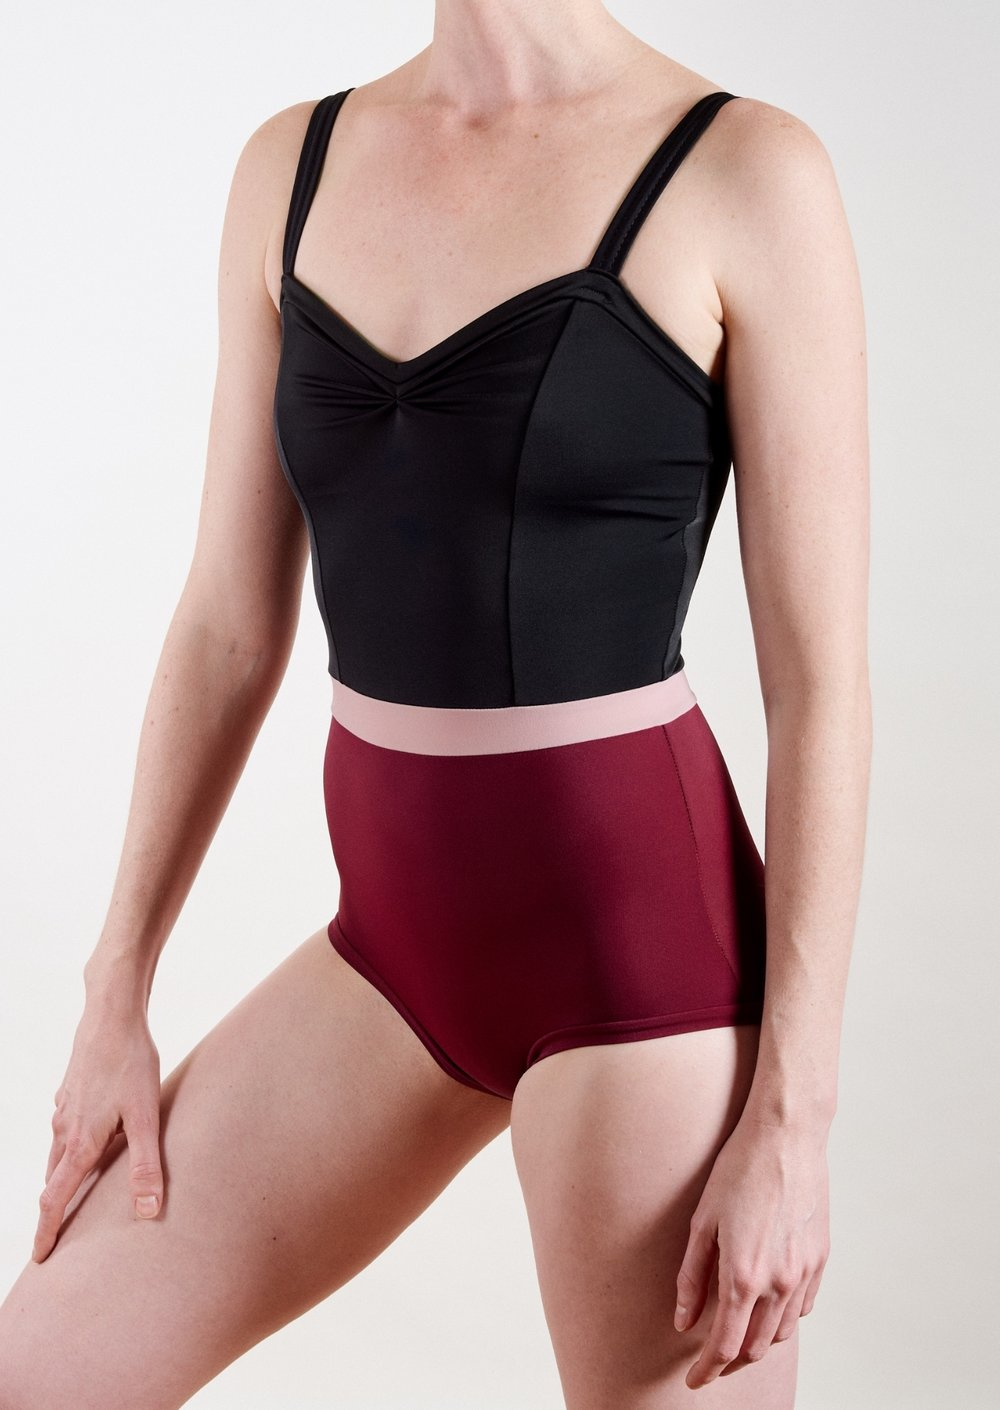 Louise Apparel - Through design, custom sizing that's tailored to your measurements, and use of the highest quality fabrics and thread, creator Ellen Warren (Ostrom) has thought of every detail to assure your leotard is comfortable, flattering and fits the way you desire.